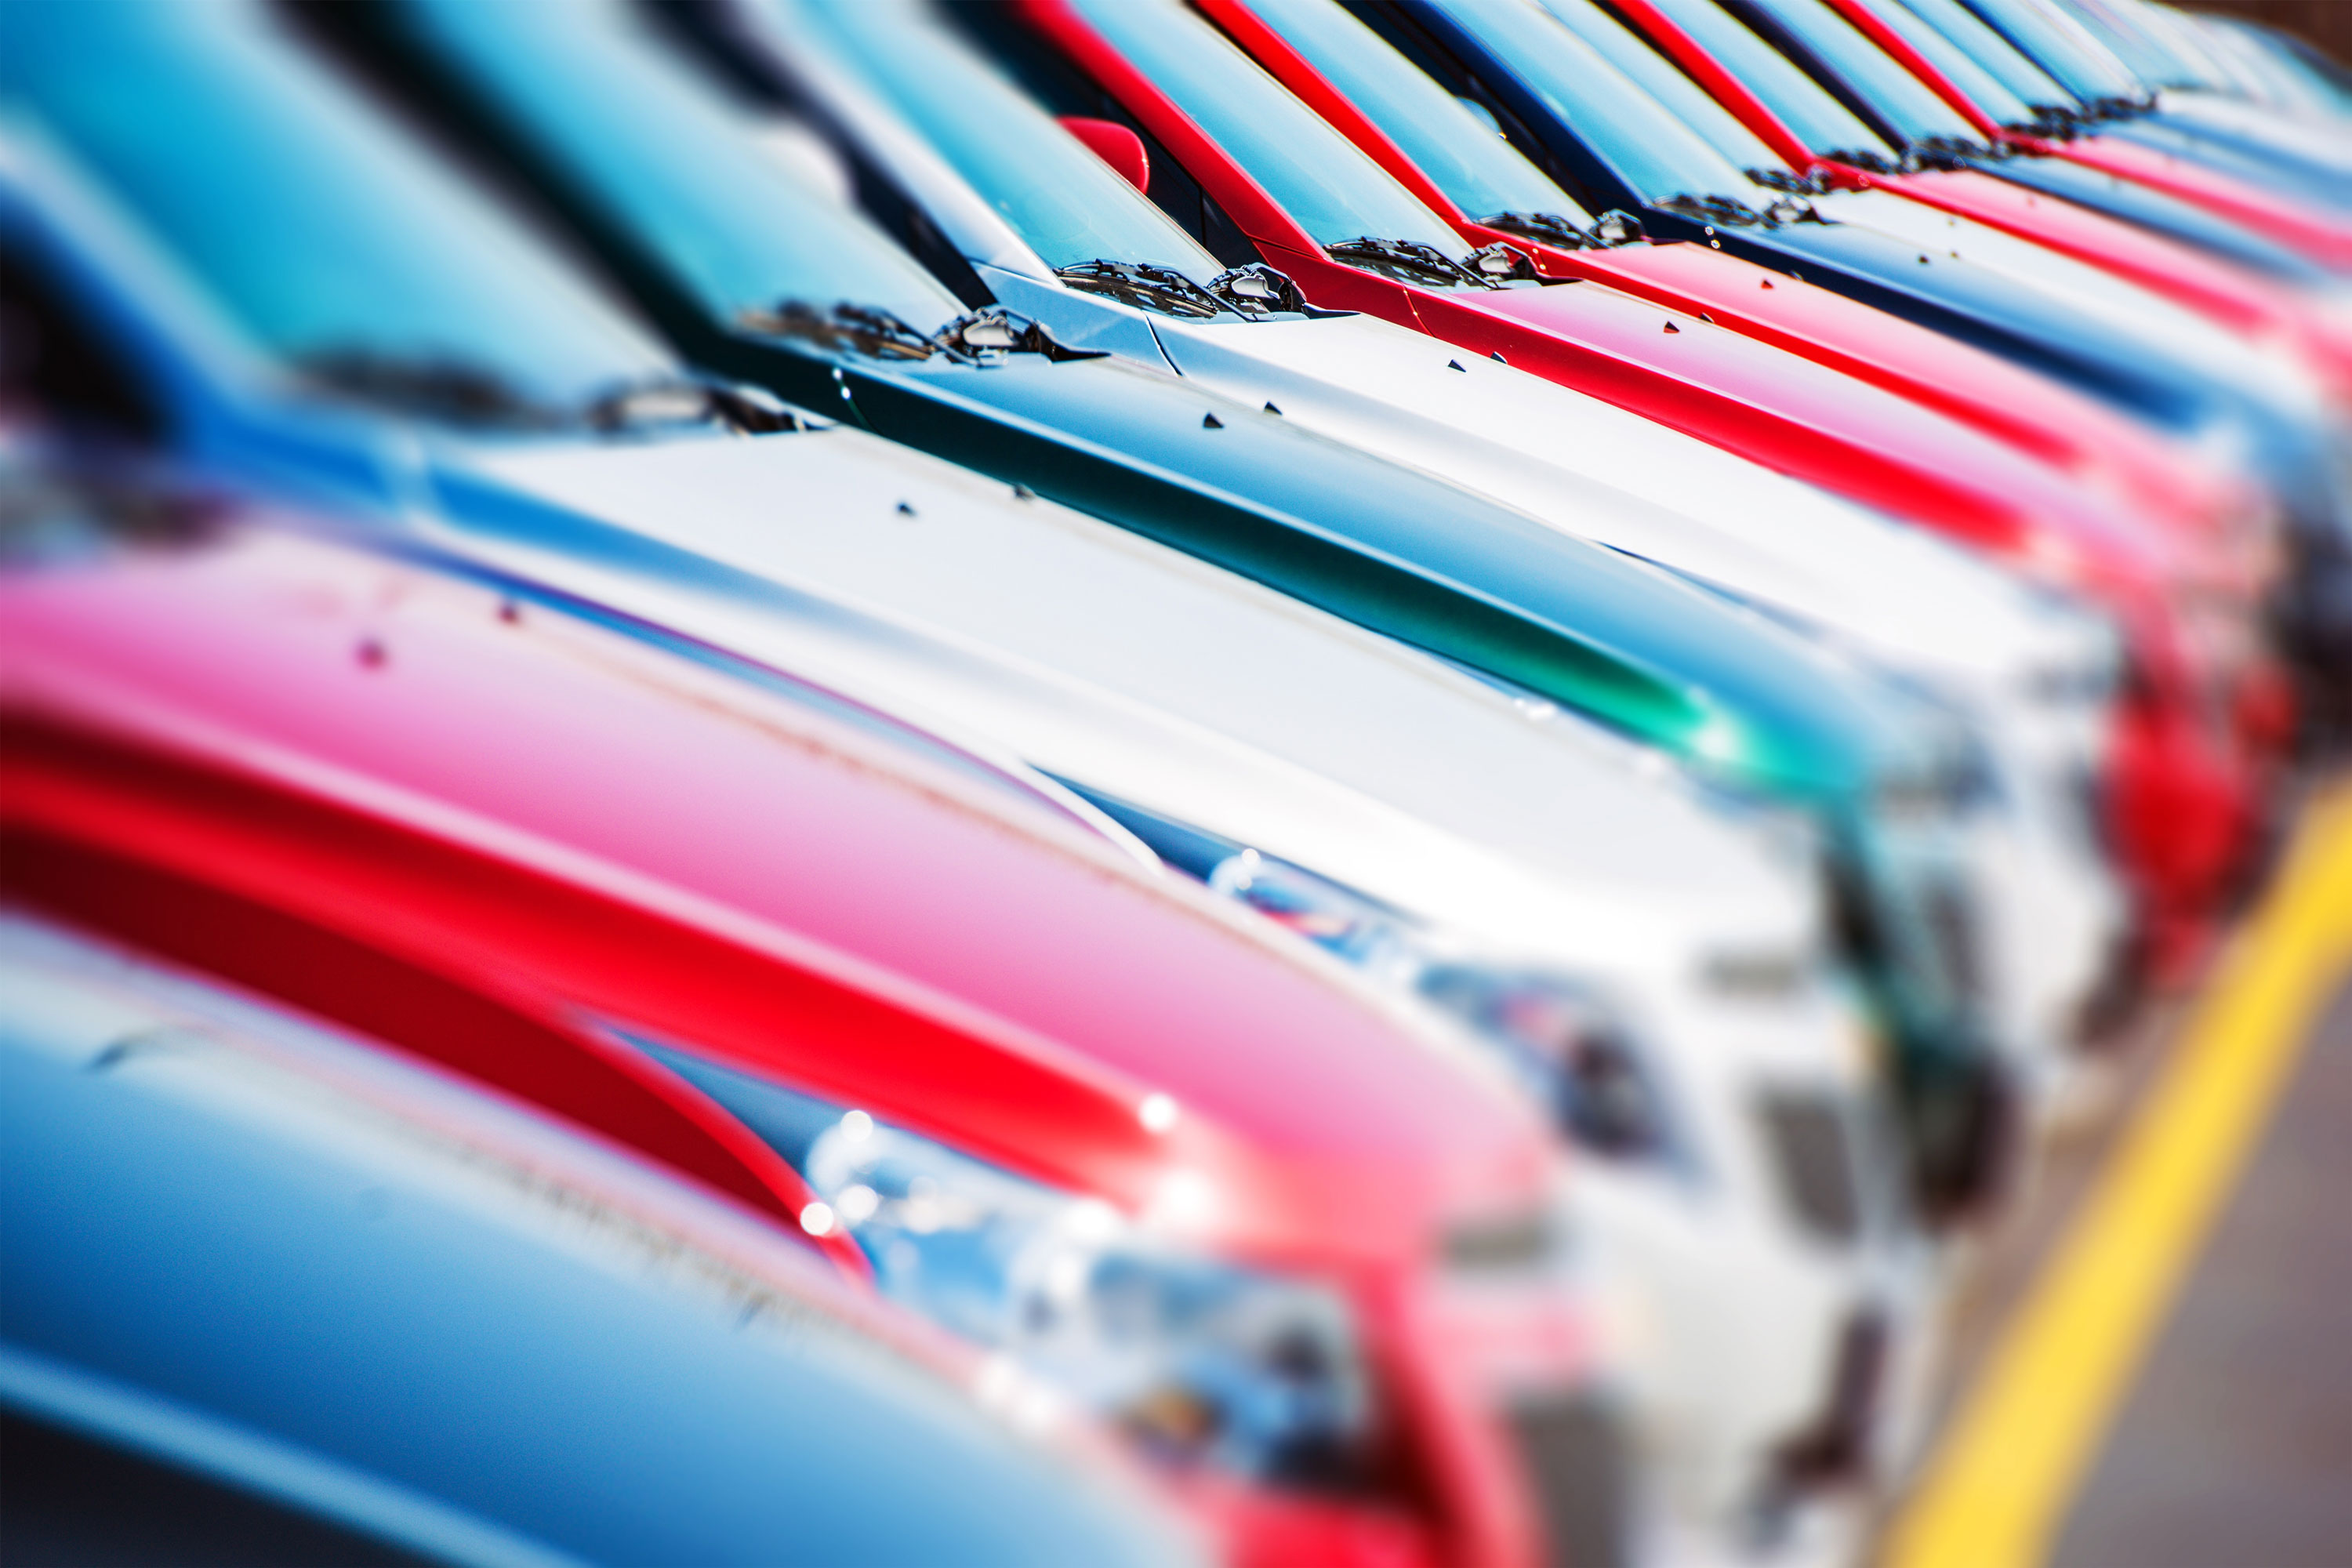 Auto Company Drives Profitability Through Real-Time Alternative Deal Structuring